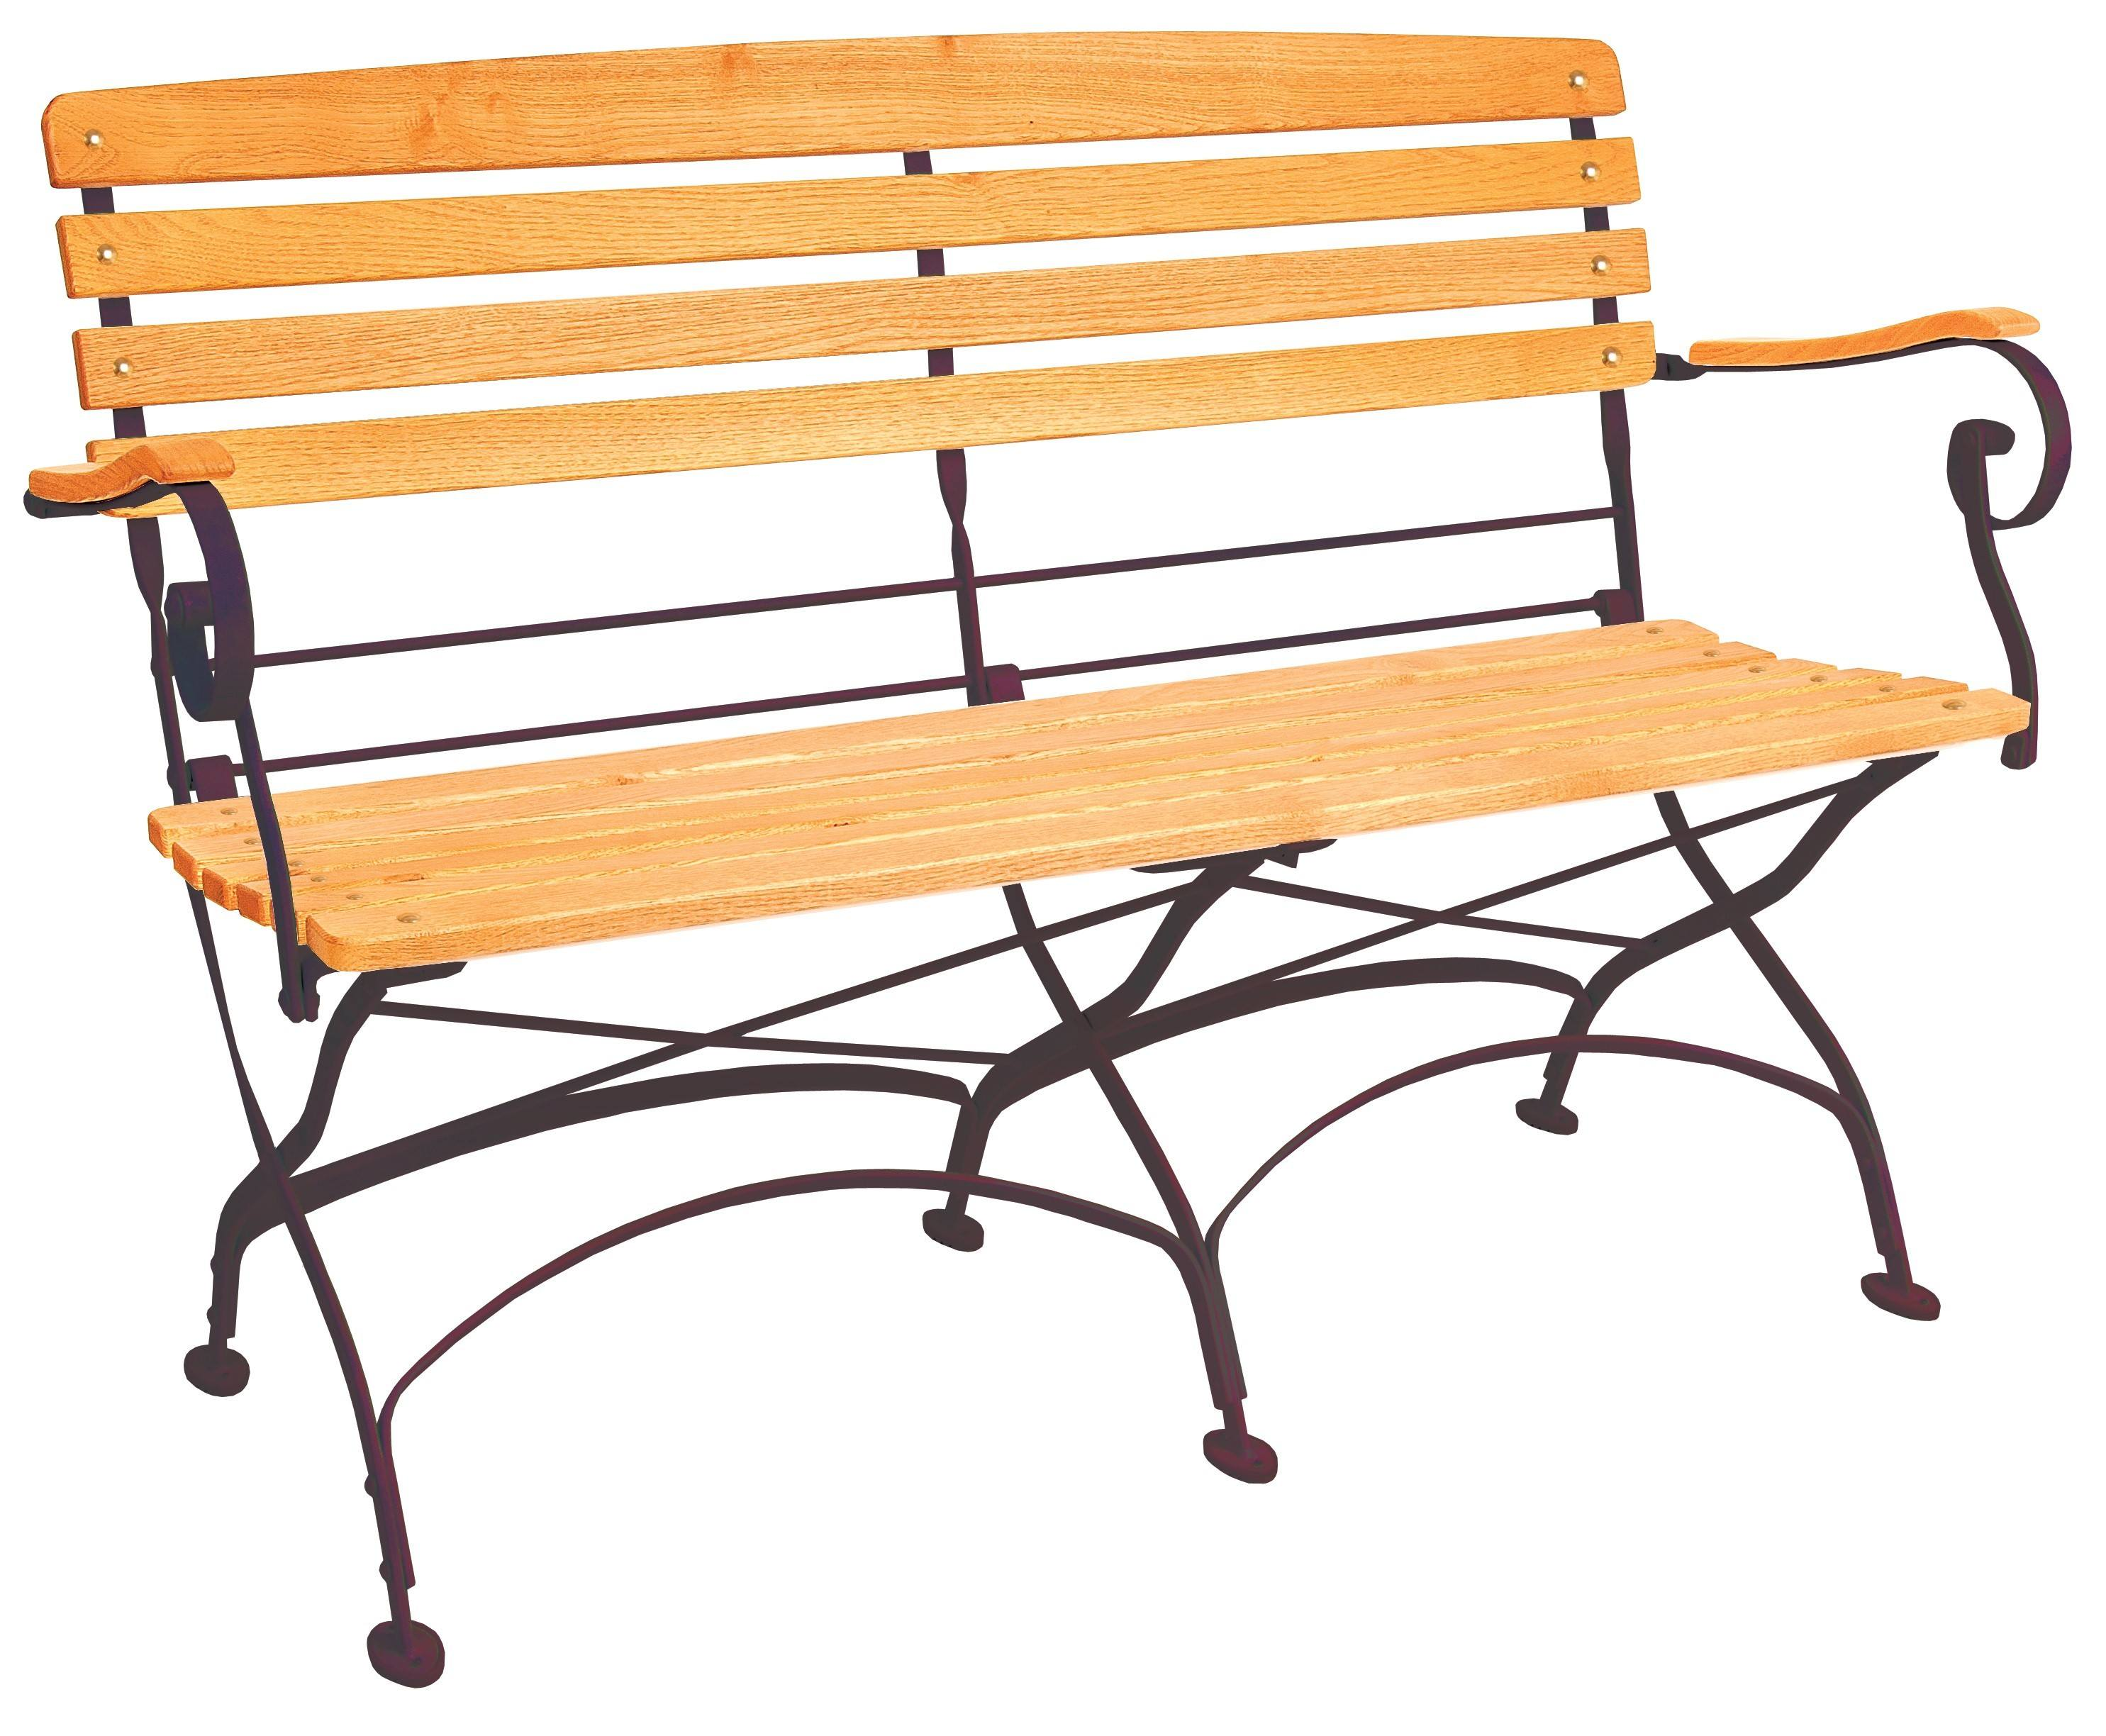 <p>Outdoor Furniture – Metal & Wooden Dining Collection – Classico Bench.</p> <p> </p> <p>Classico Furniture Bench with light coloured slatted hardwood seat armrests and backrest with black hand-forged frame.</p> <p> </p> <p>Ideally suited for either indoor or outdoor relaxed dining location or more intimate café bistro al fresco area or for events requiring easy to fold and store furniture.</p>